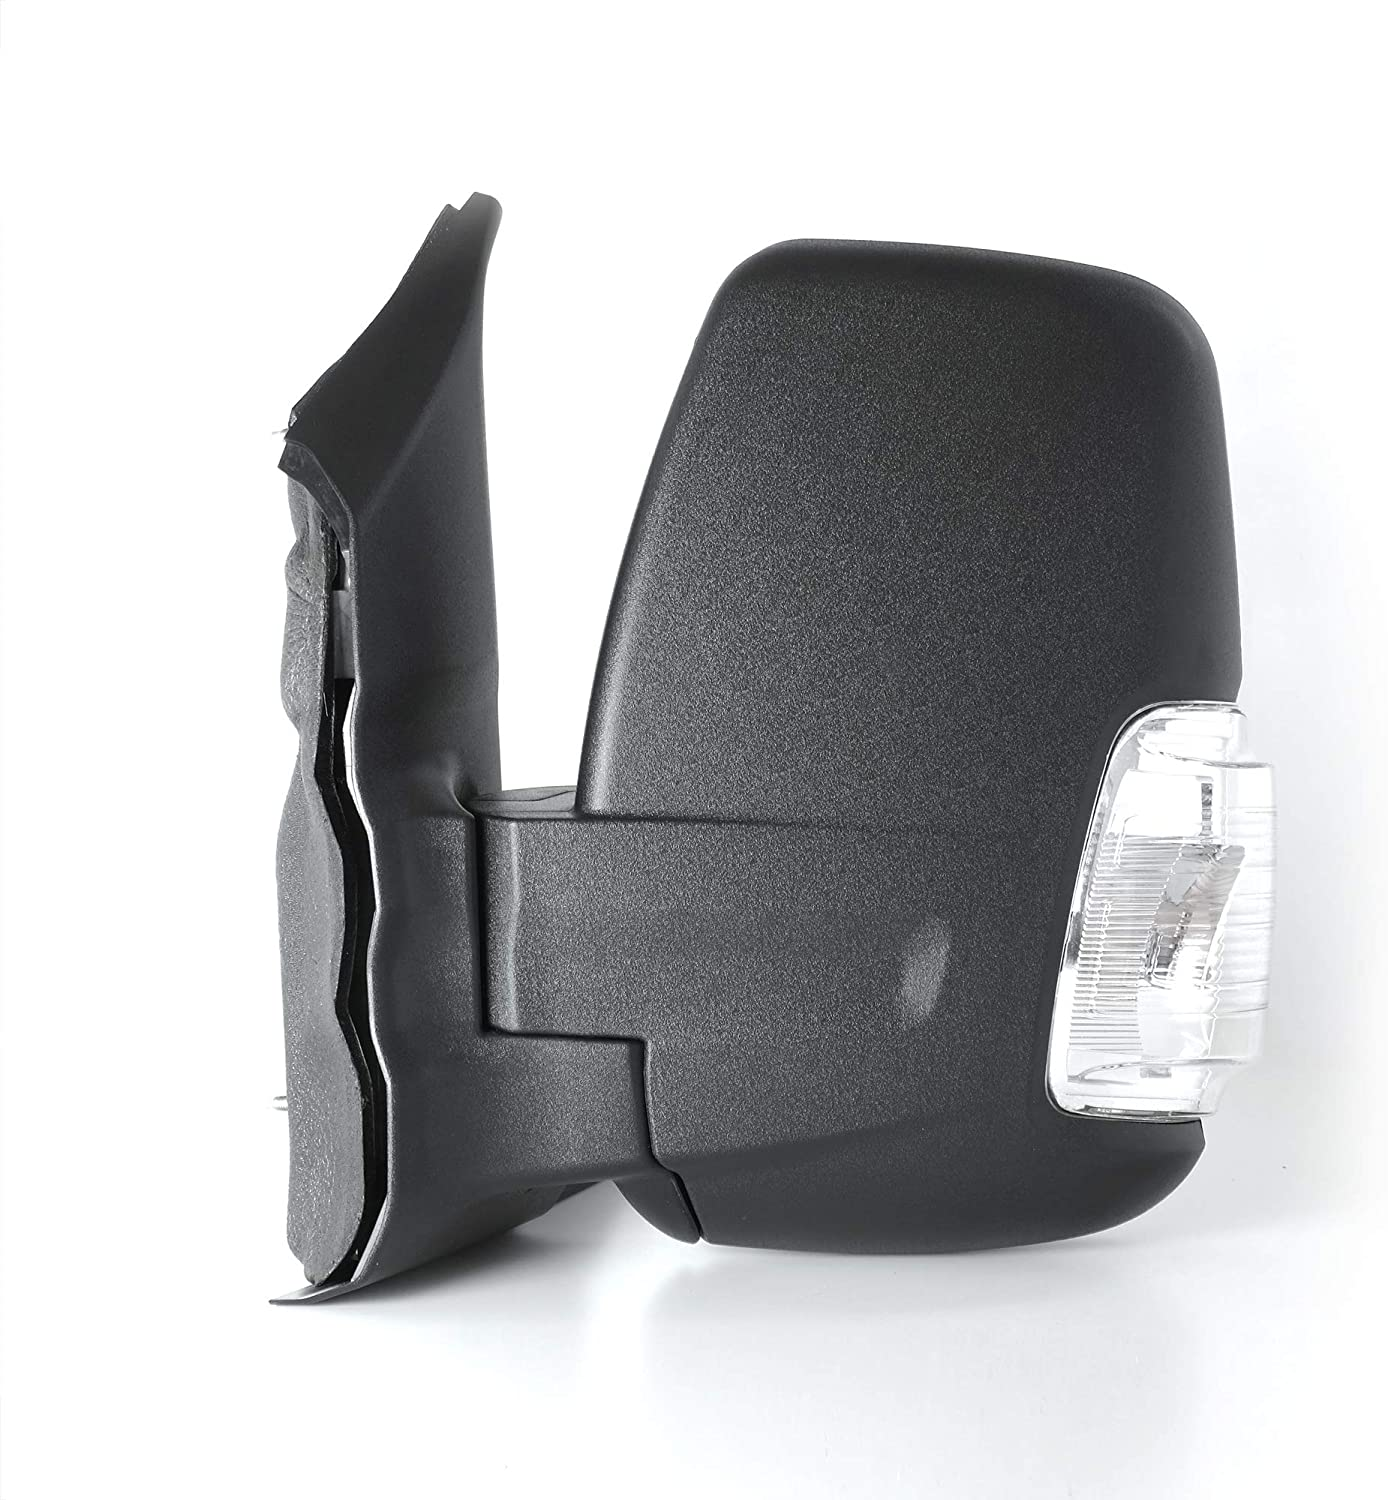 Spieg Driver Side Door Side Mirror Turn Signal Lamp Replacement for Ford Transit 150 Cargo 2015-2017